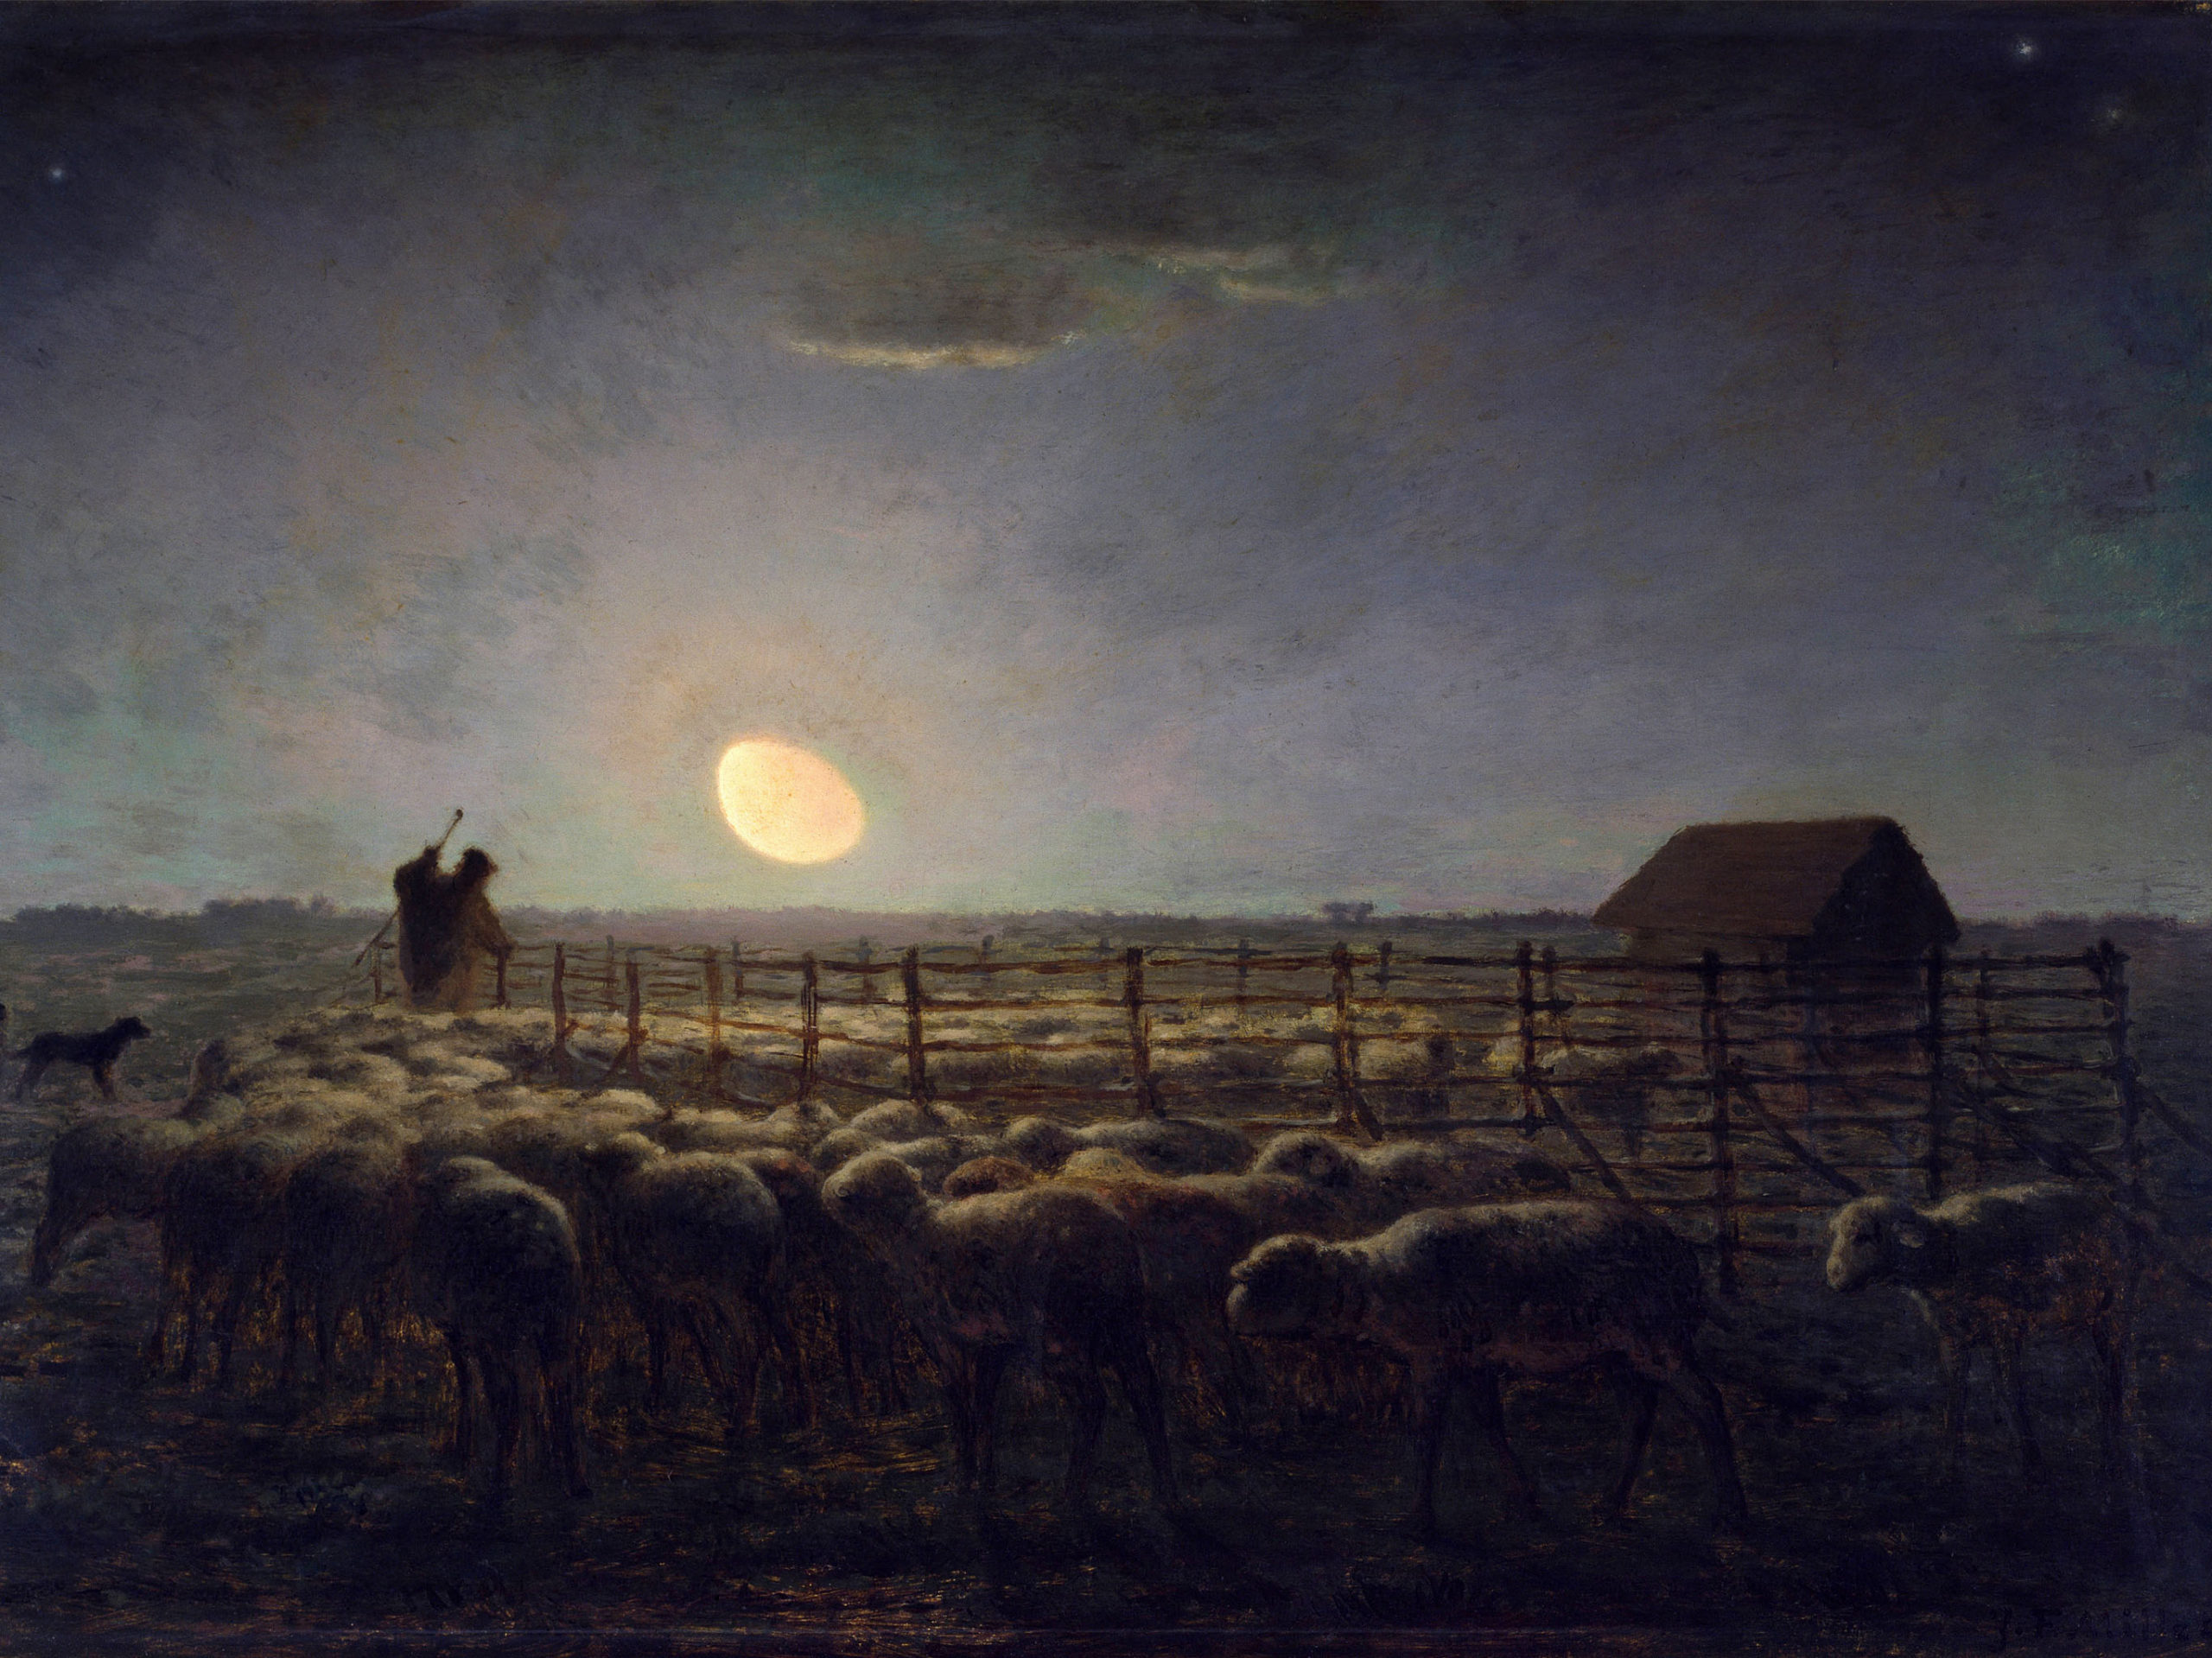 Jean-François Millet - The Sheepfold Moonlight 2732x2048